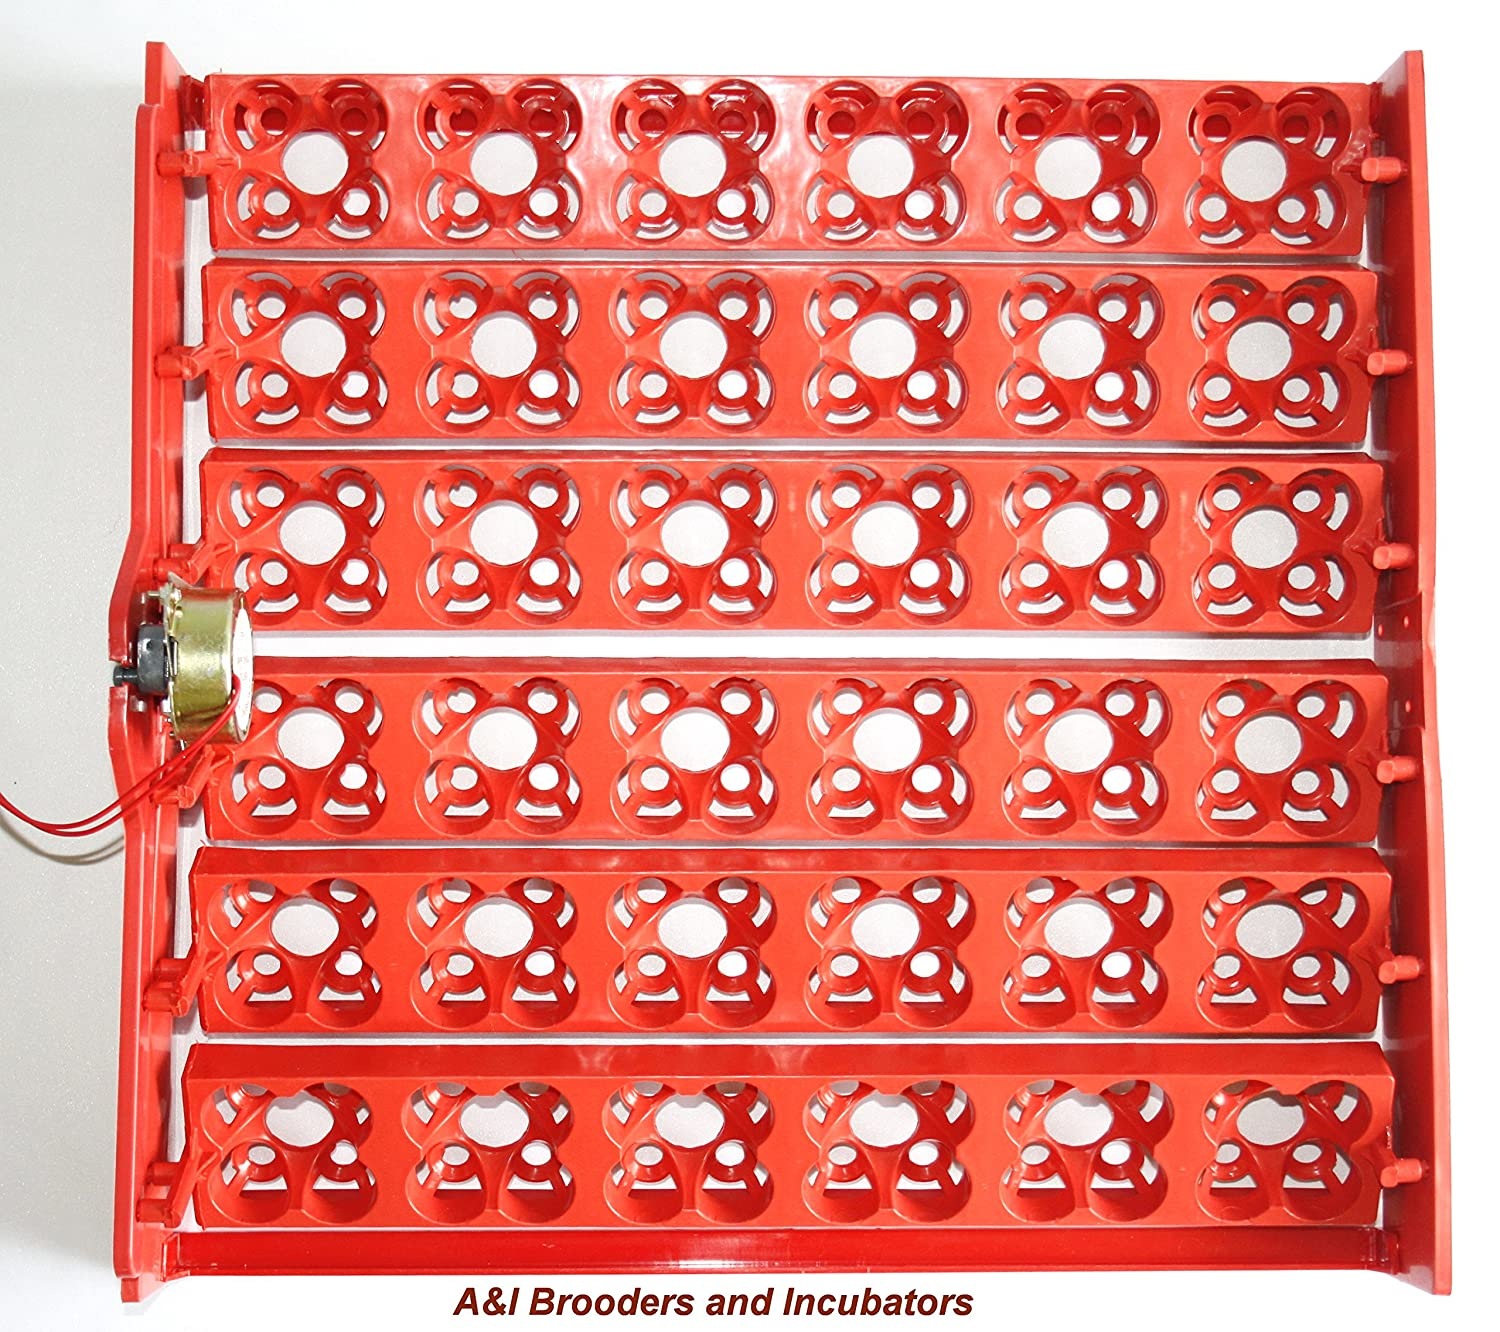 Automatic 144 Eggs Quail Turner Tray For Incubator With Little Giant Wiring Diagram 110 Volt Pcb Motor New Garden Outdoor